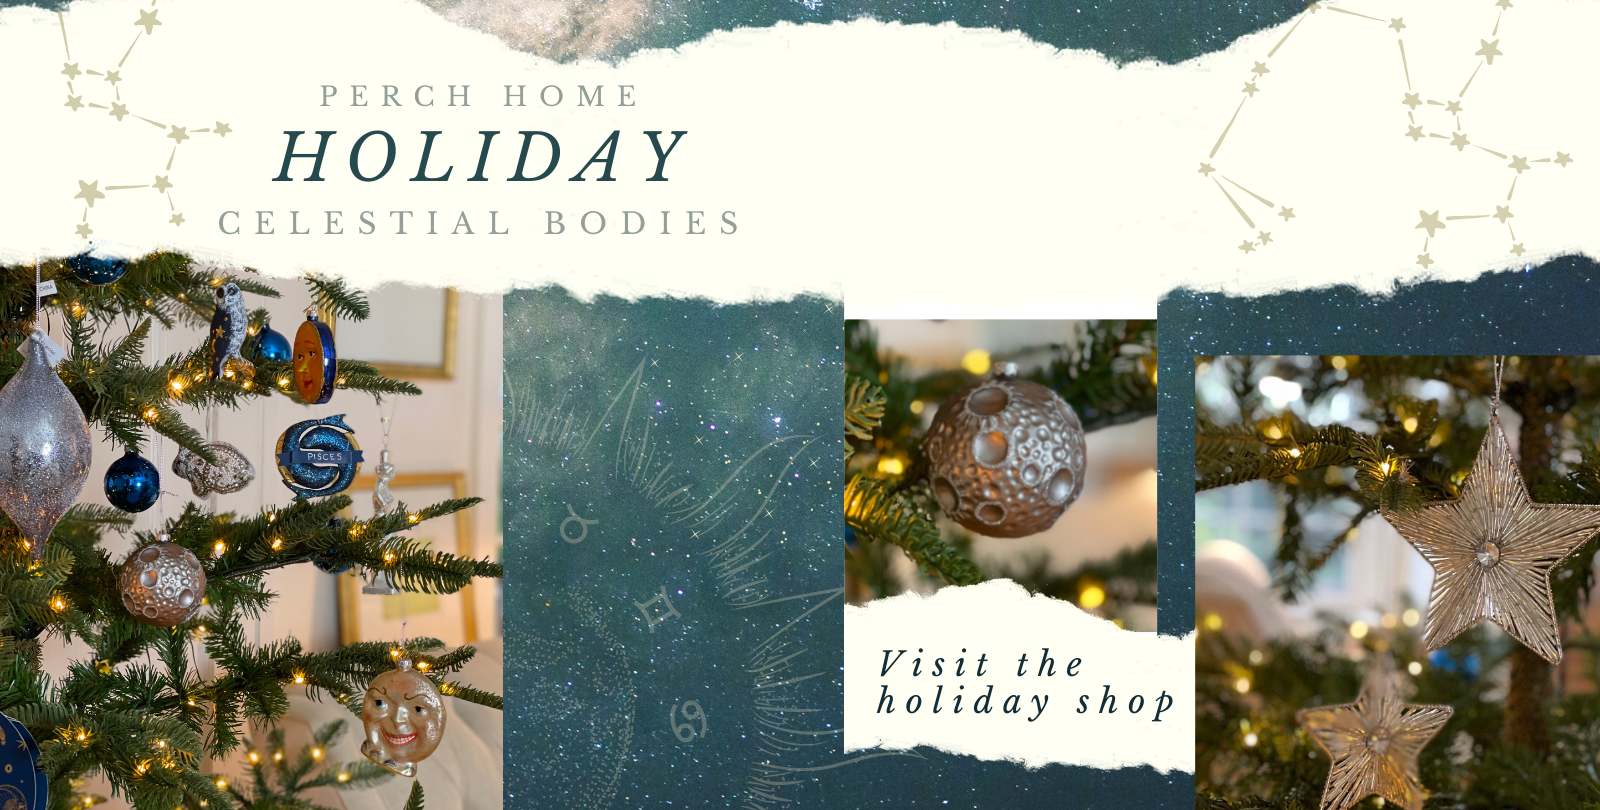 Perch Home Holiday Shop 2021